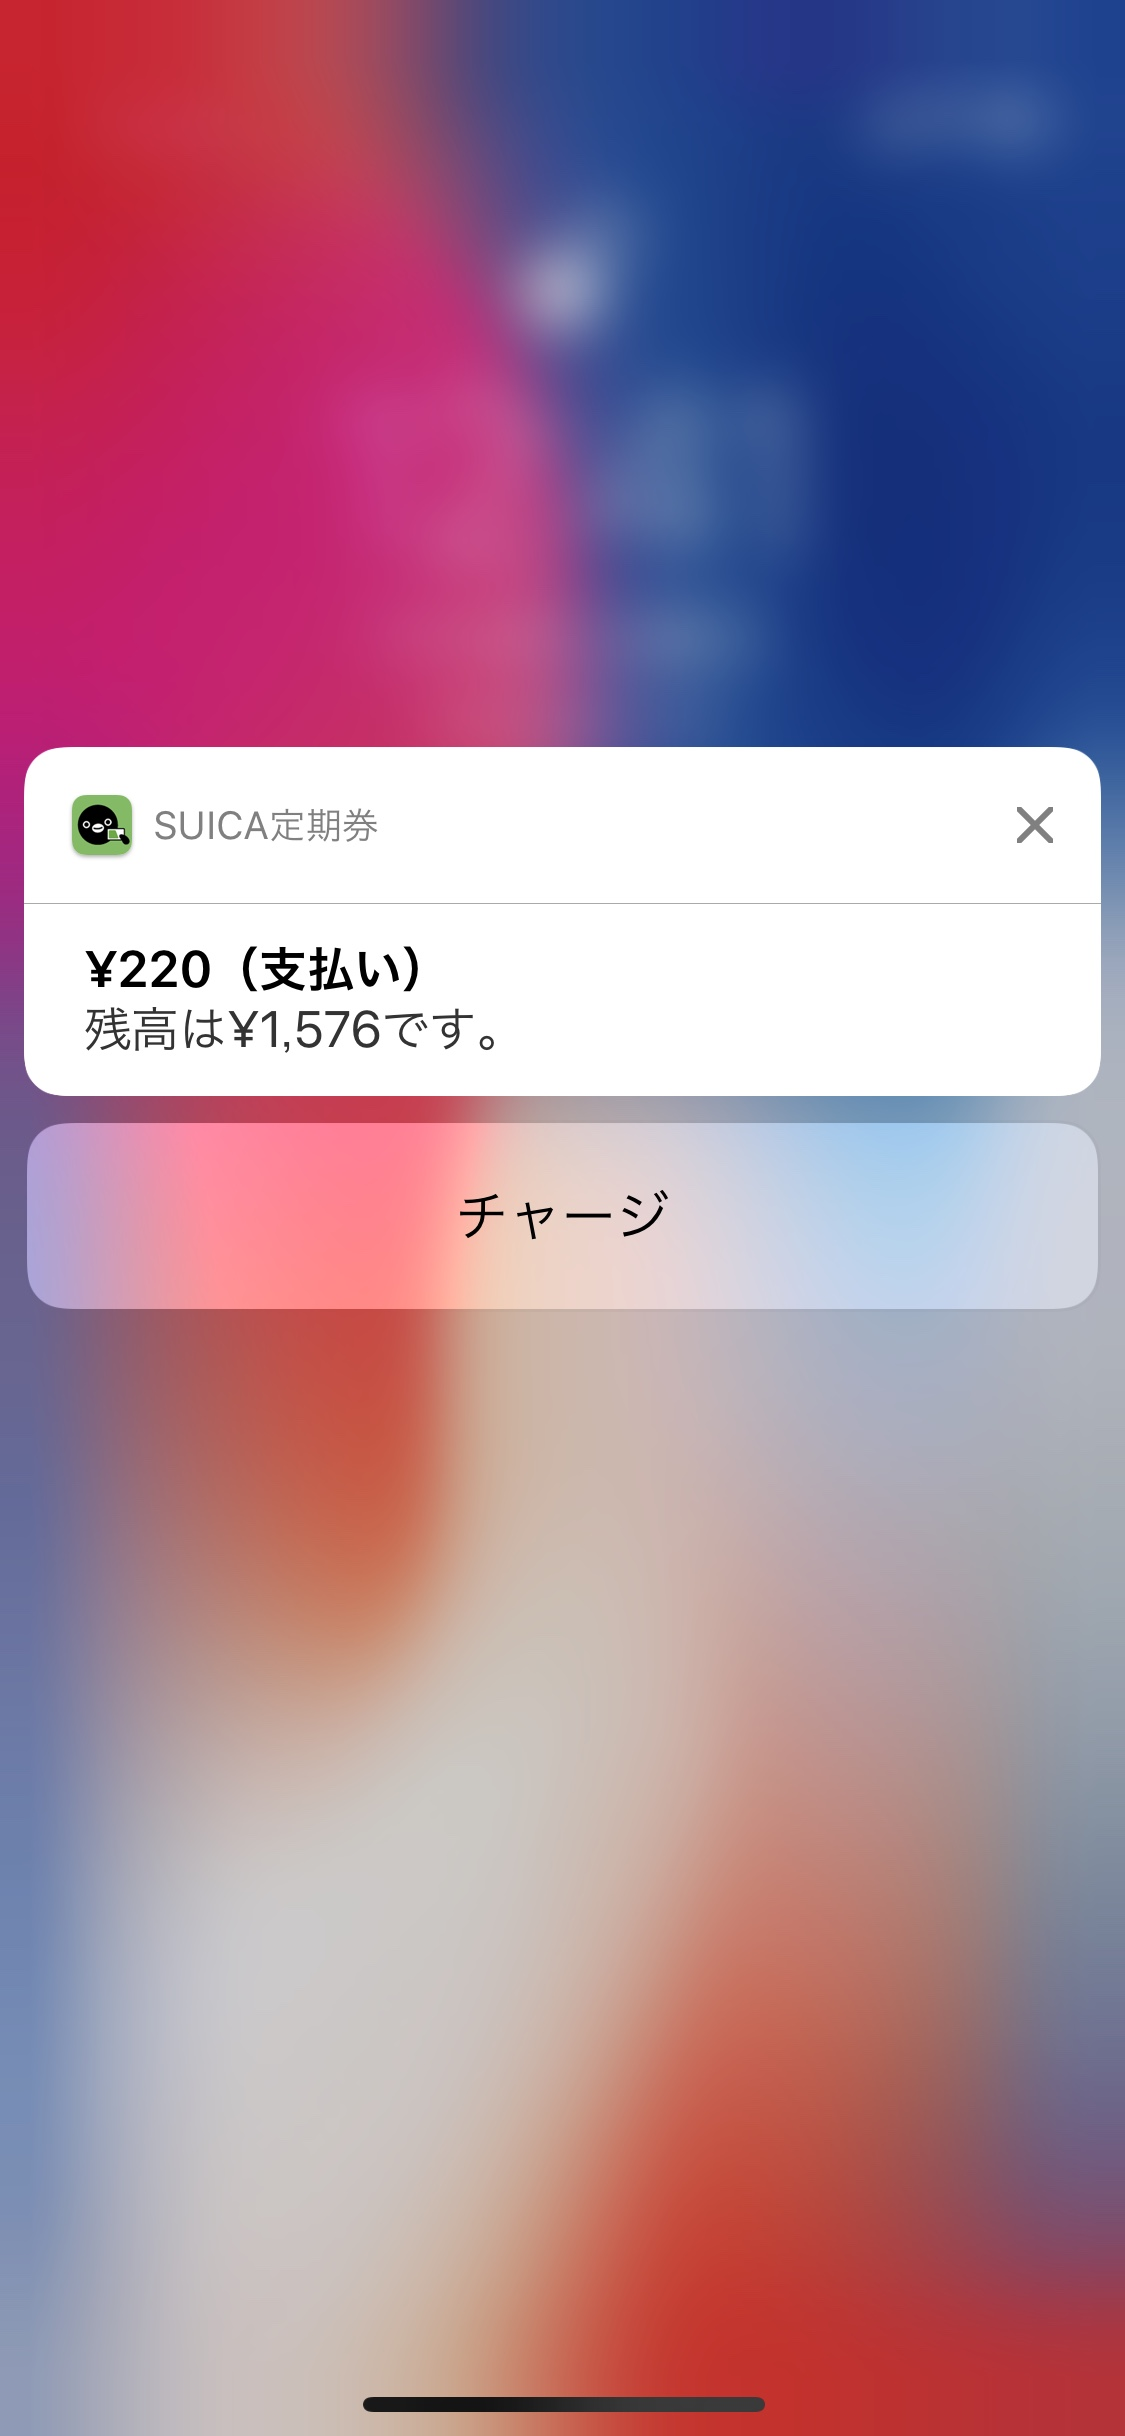 Tap a Suica notification and a Recharge option appears